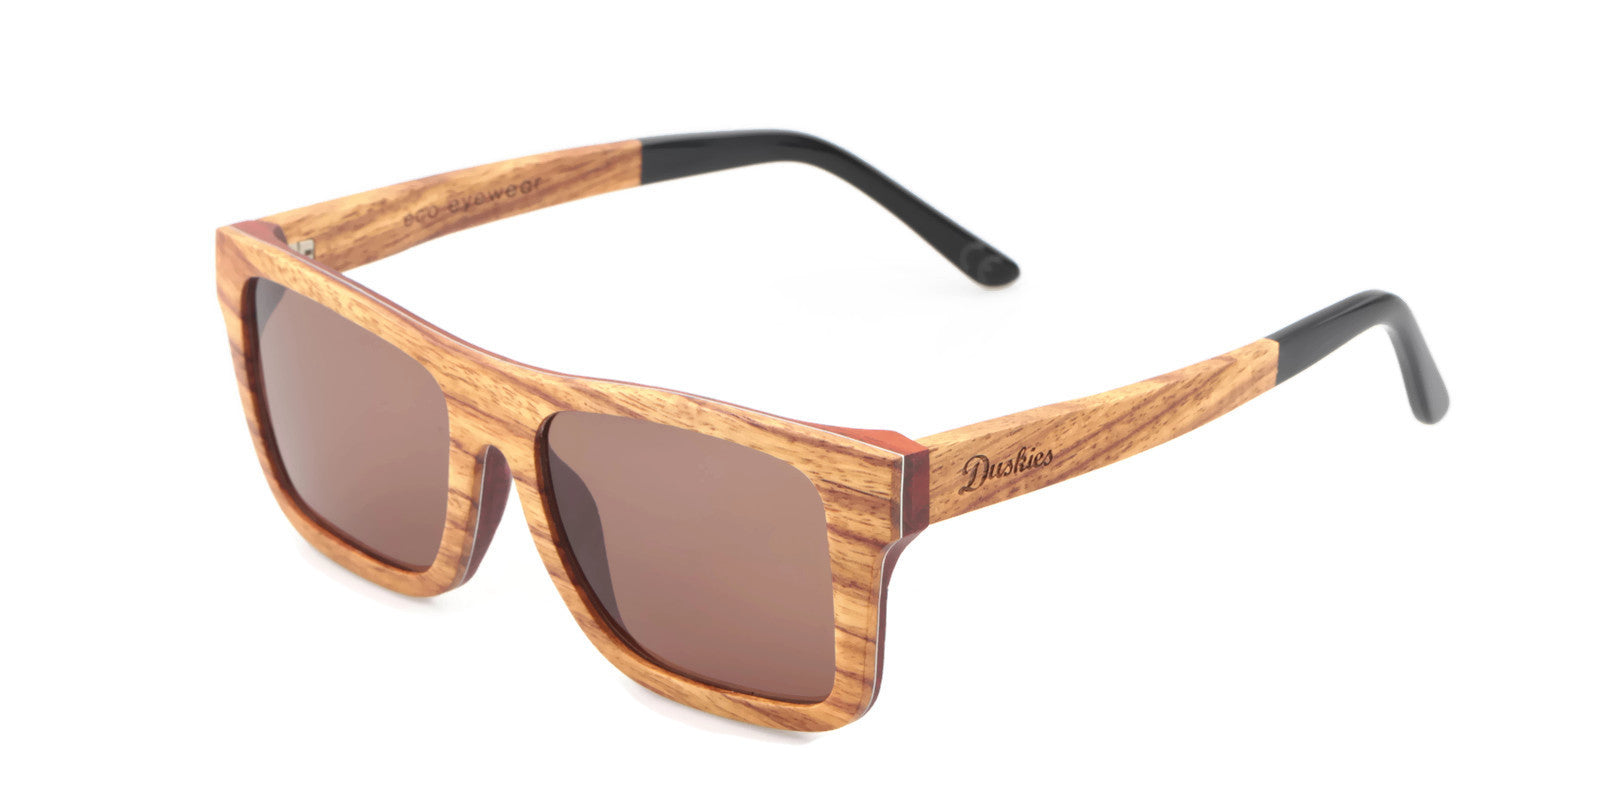 Stephano- CR39 Polarised Brown lens